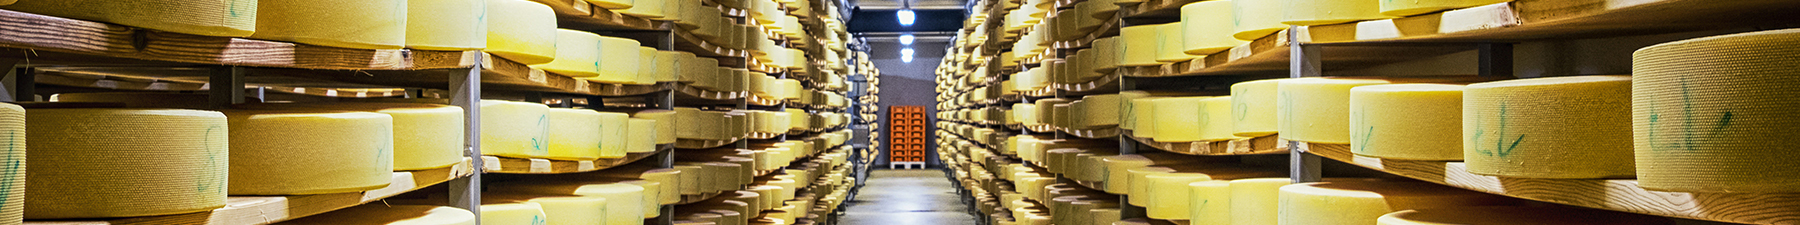 Round cheeses in warehouse